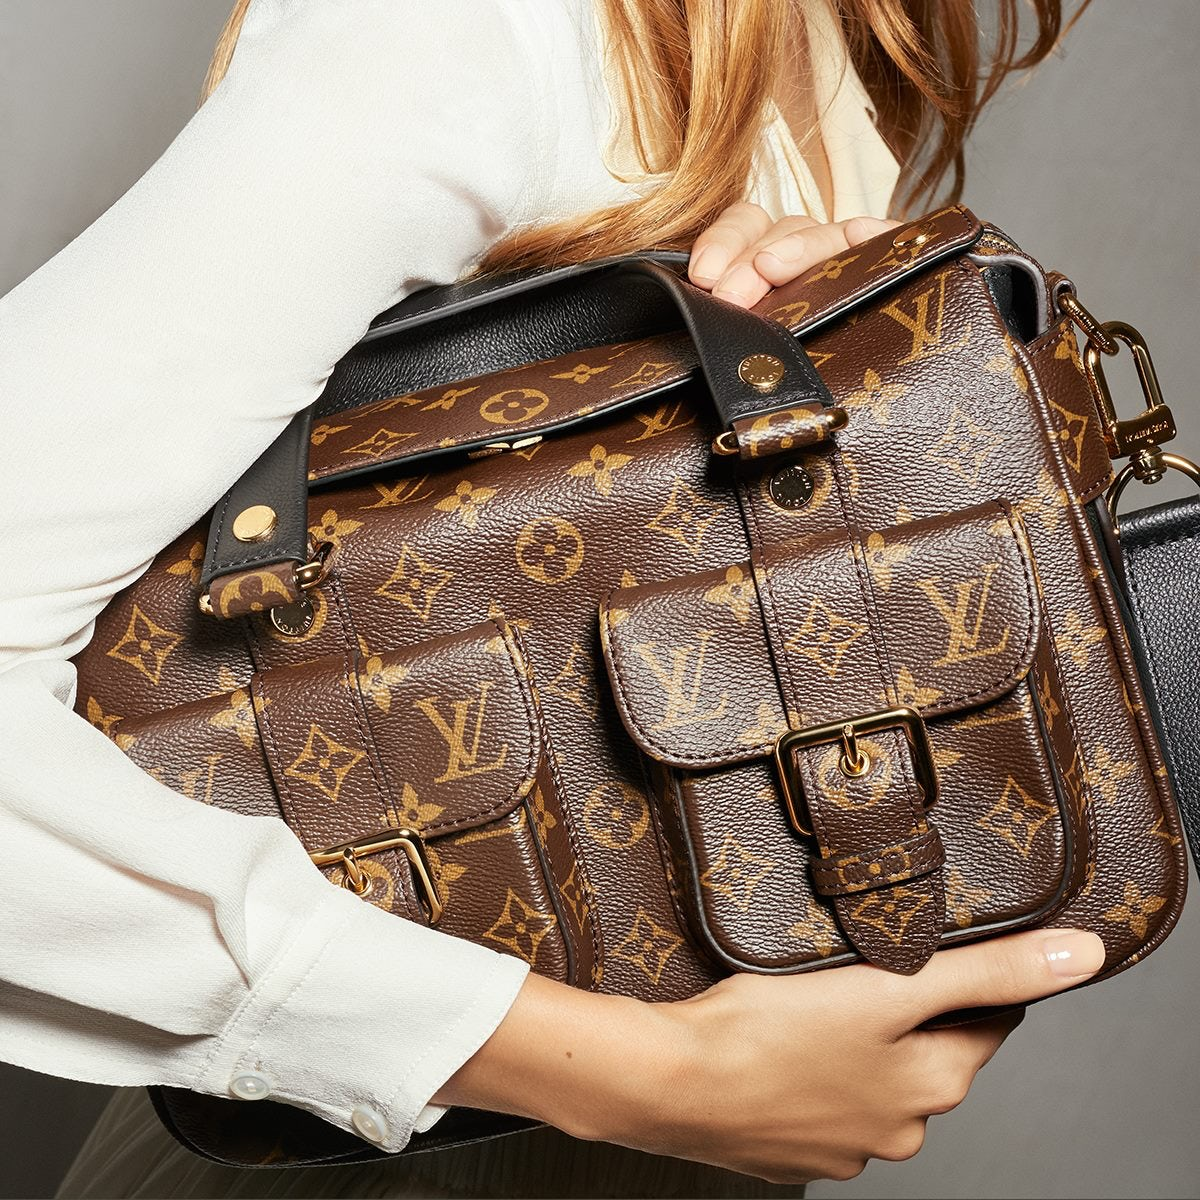 Image result for Louis Vuitton Turns to Facebook to Chat Customers Online